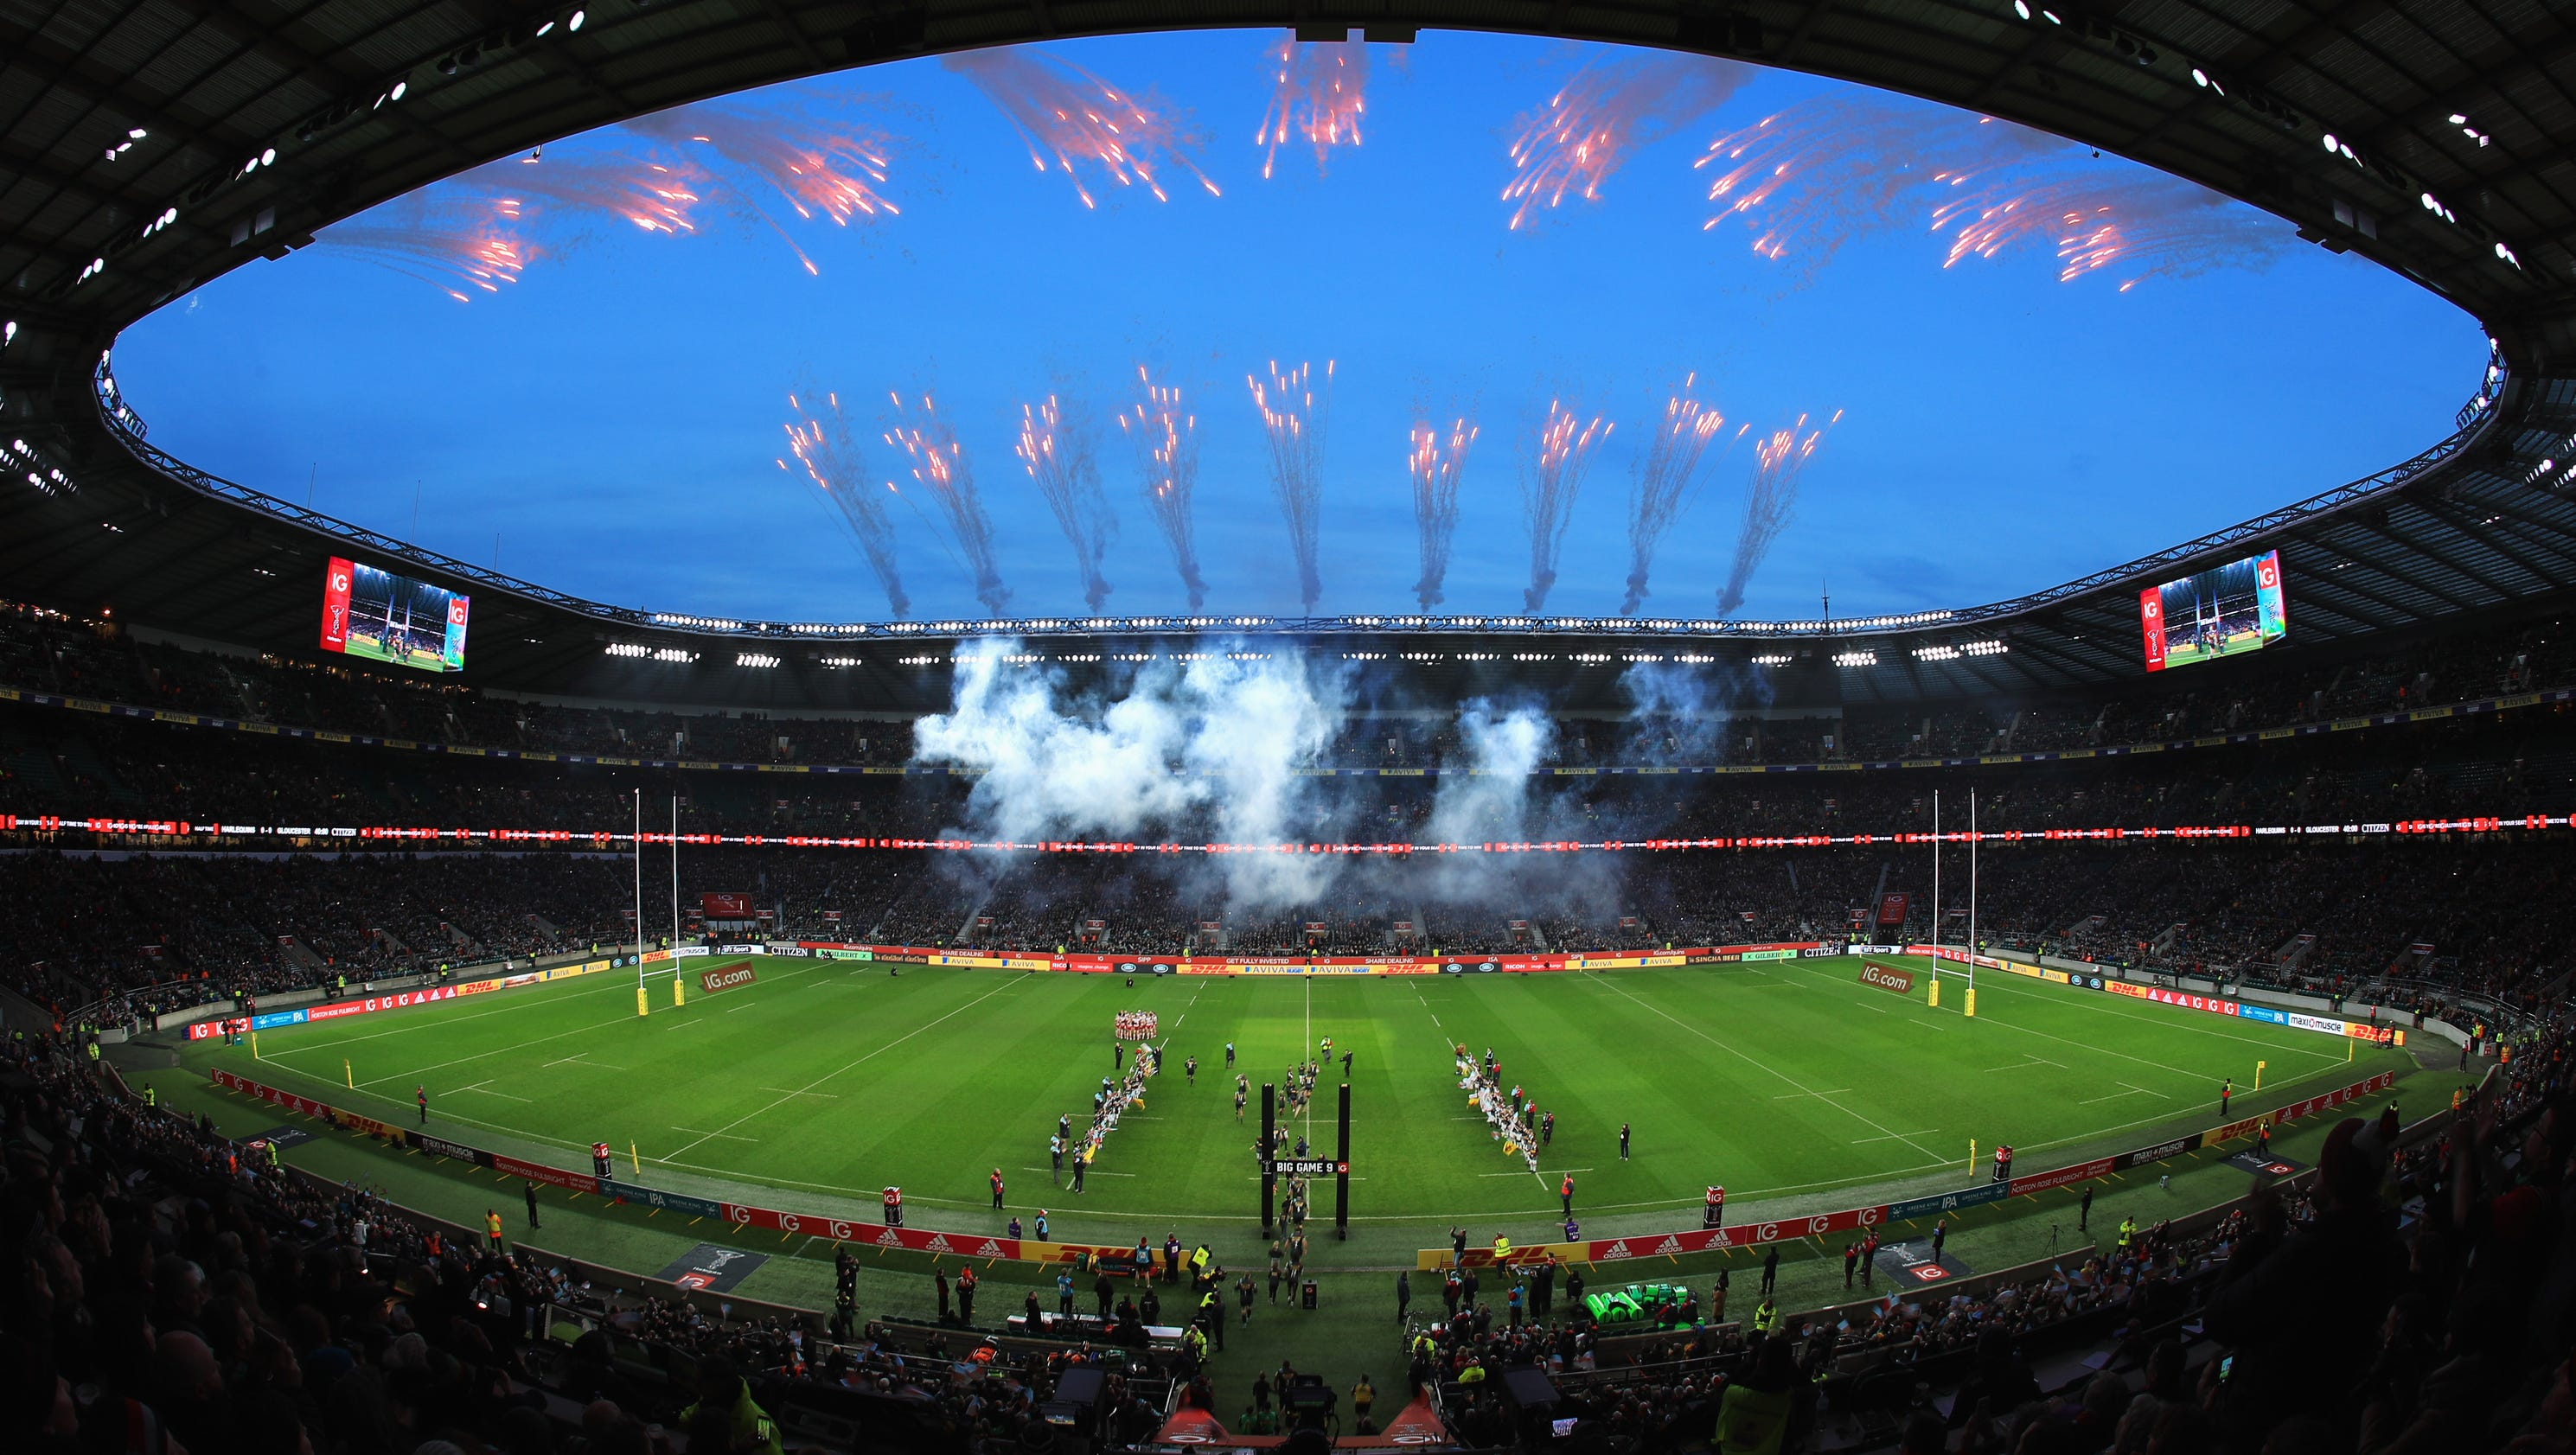 636195709849004588-twickenham-stadium